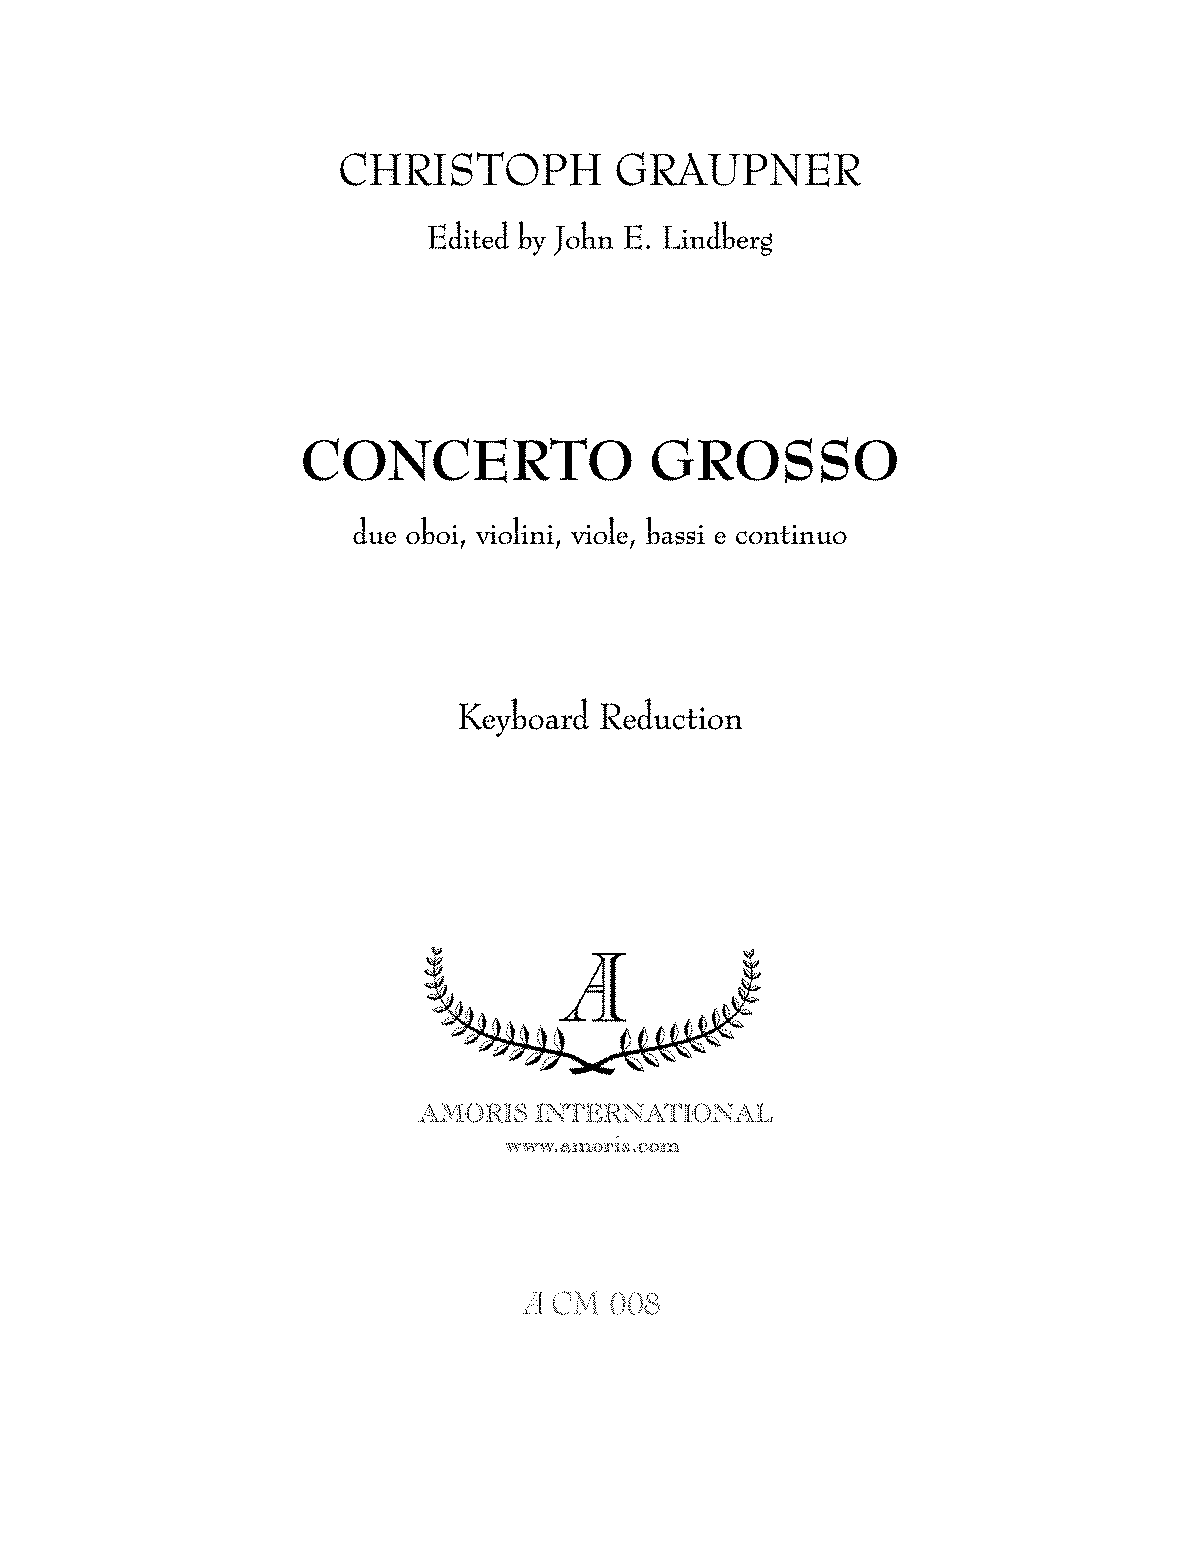 WIMA.540e-Graupner-Concerto-Grosso-reduction.pdf